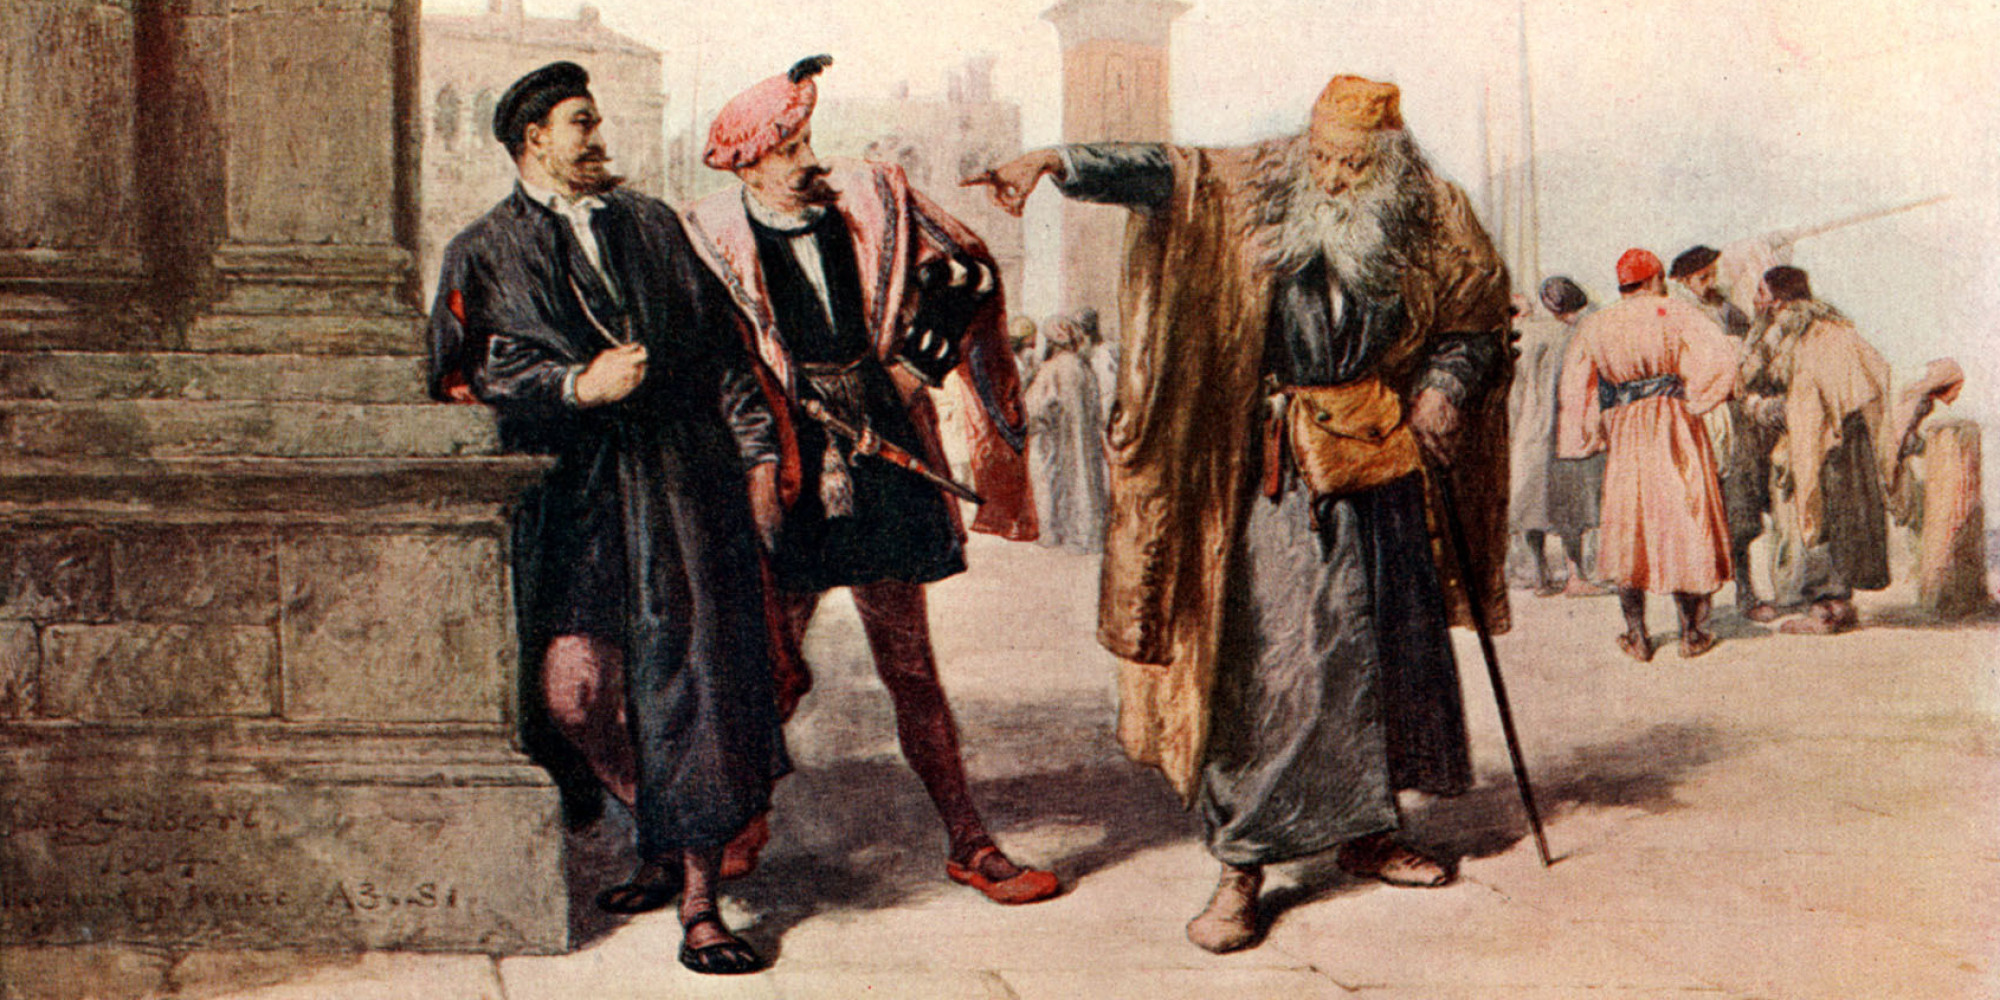 character analysis of shylock essay Shylock is a character in william shakespeare's play the merchant of venice a venetian jewish moneylender, shylock is the play's principal antagonist.